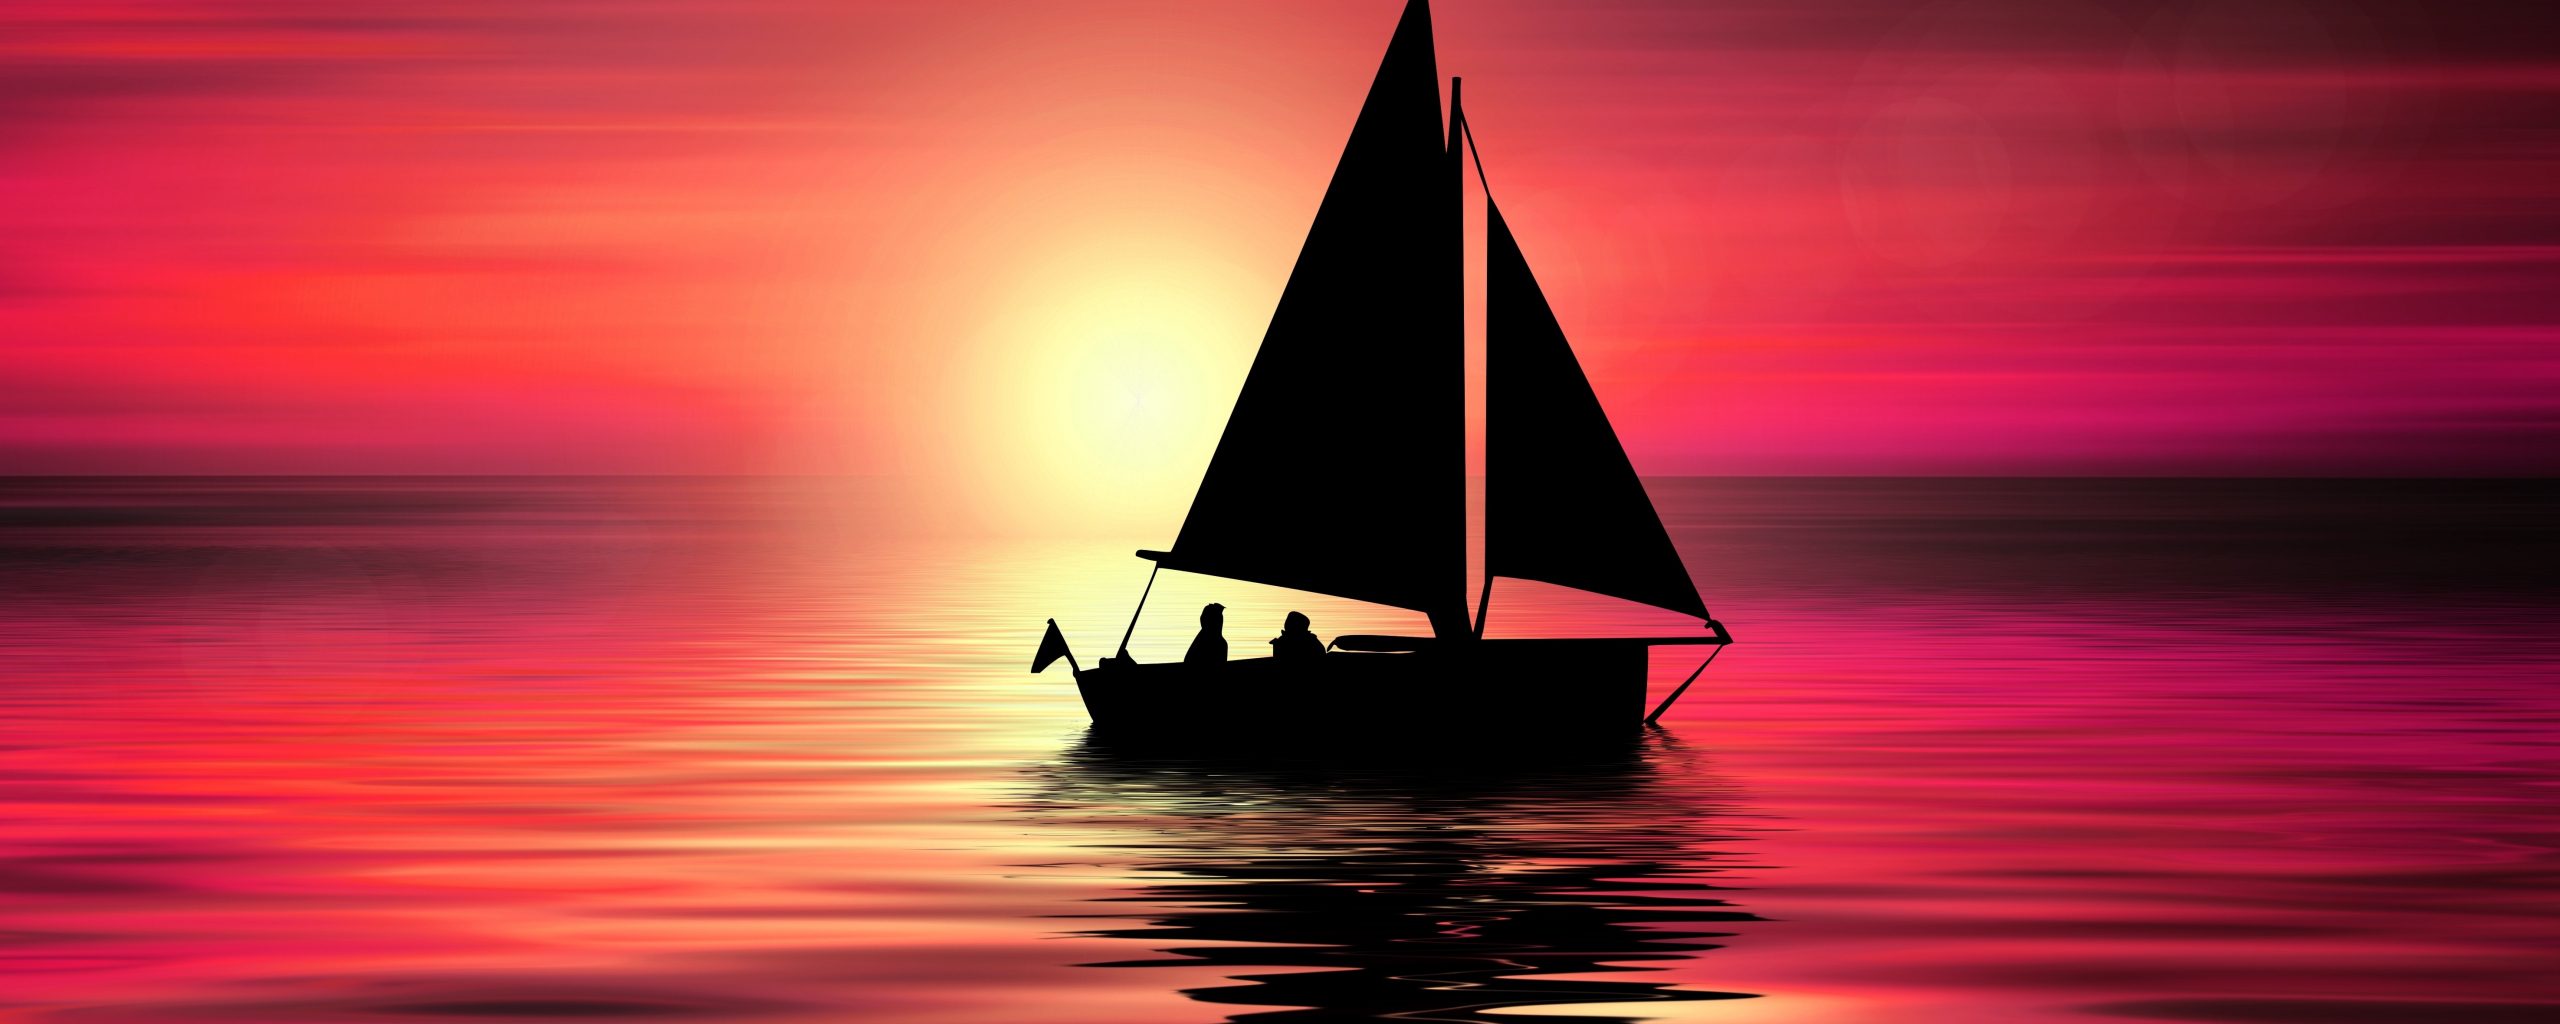 Artwork, sailboat, sunset, silhouette, 2560x1024 wallpaper